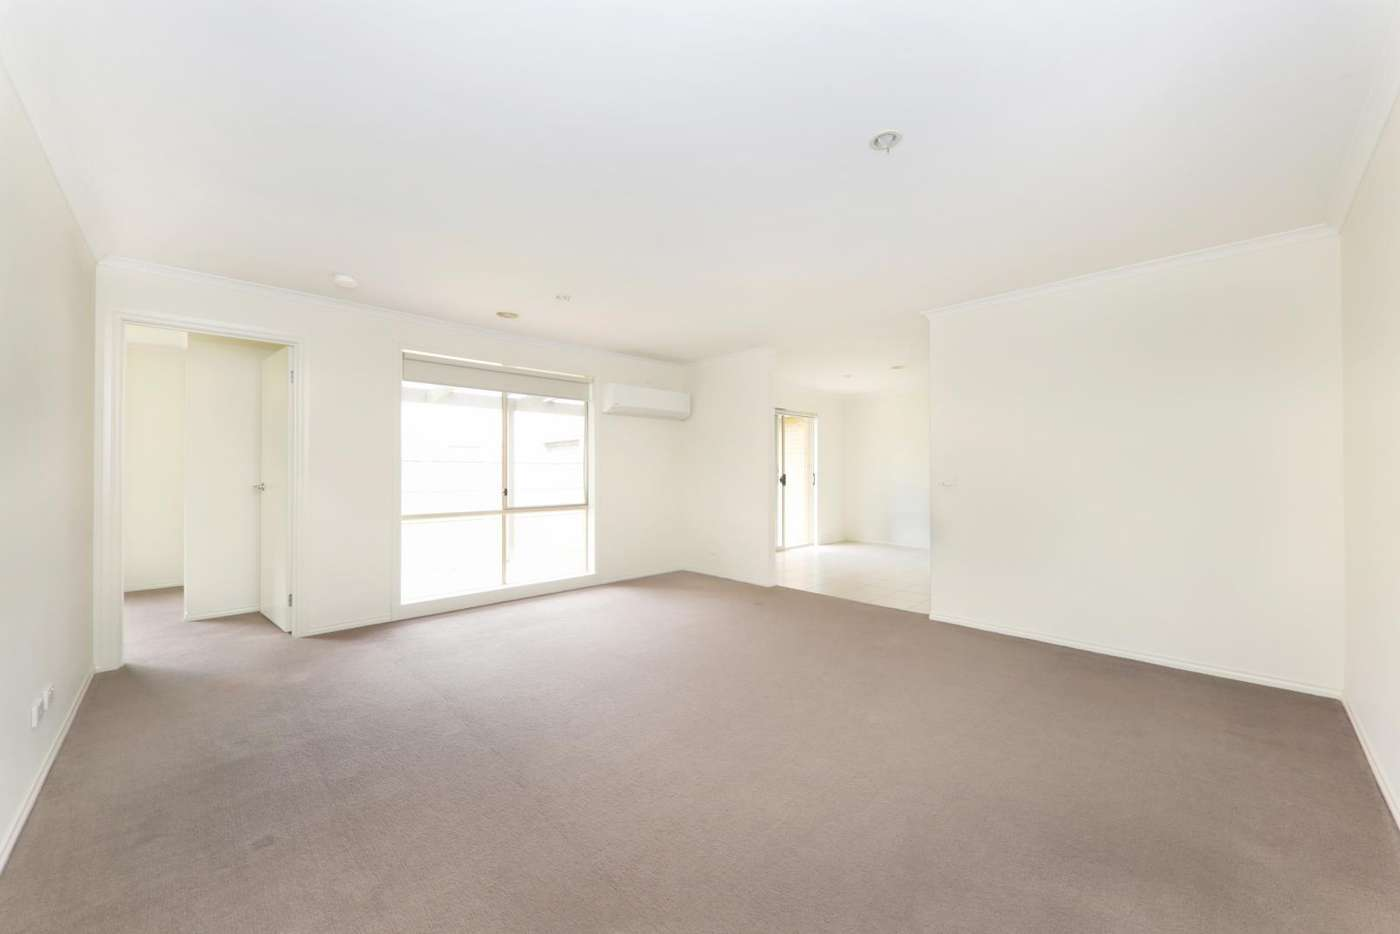 Fifth view of Homely house listing, 11 Hayes Court, Pakenham VIC 3810